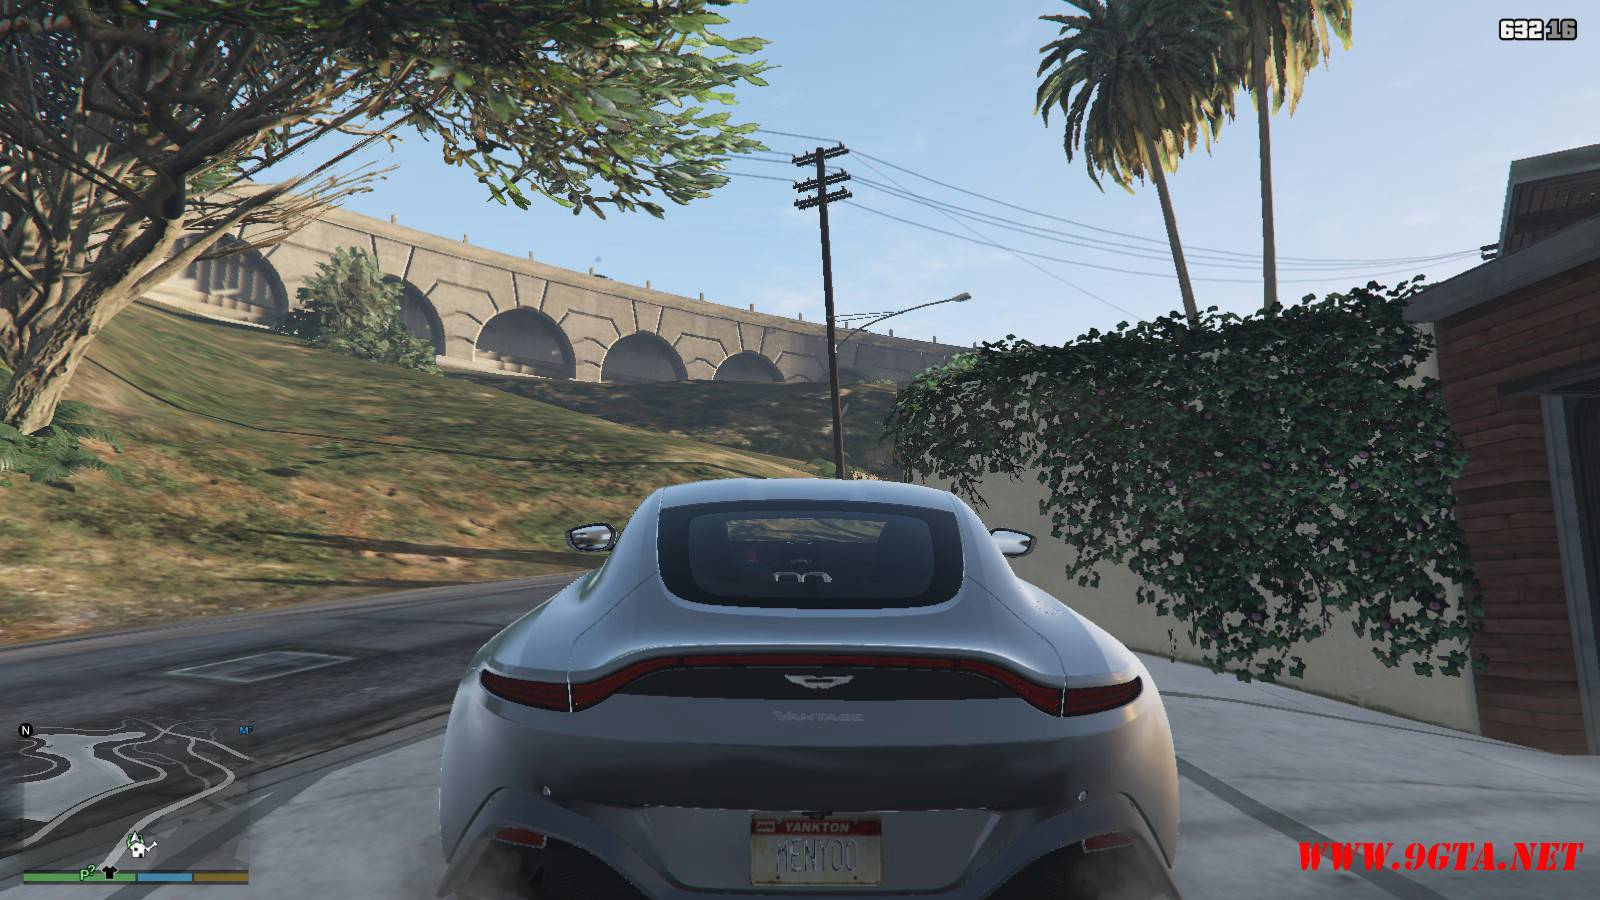 2019 Aston Martin Vantage v3.0 Mod For GTA5 (6)